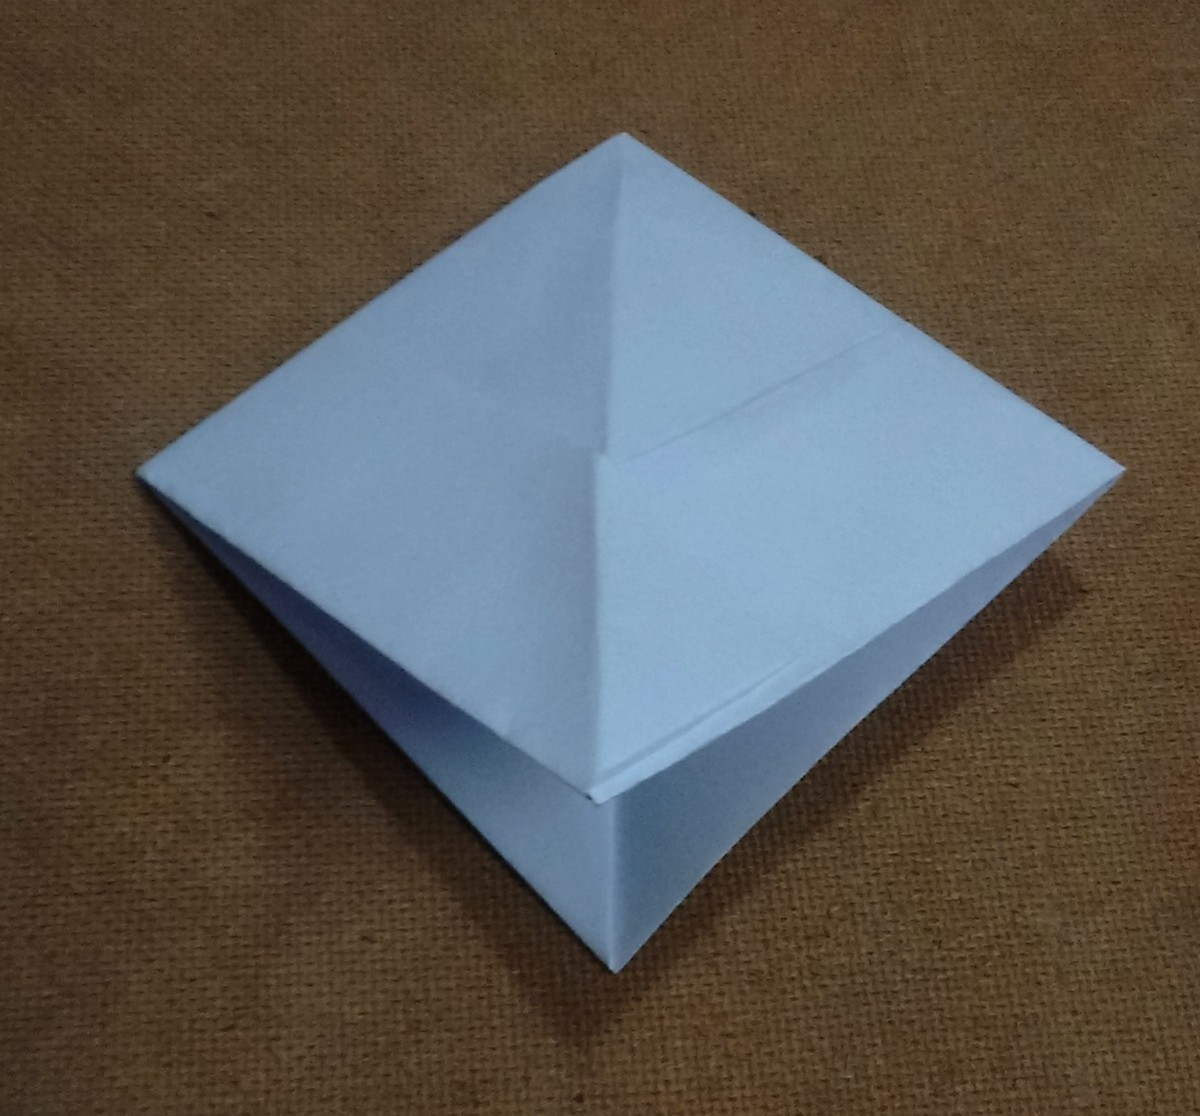 This results in the formation of a square shaped paper structure with two lower corners.